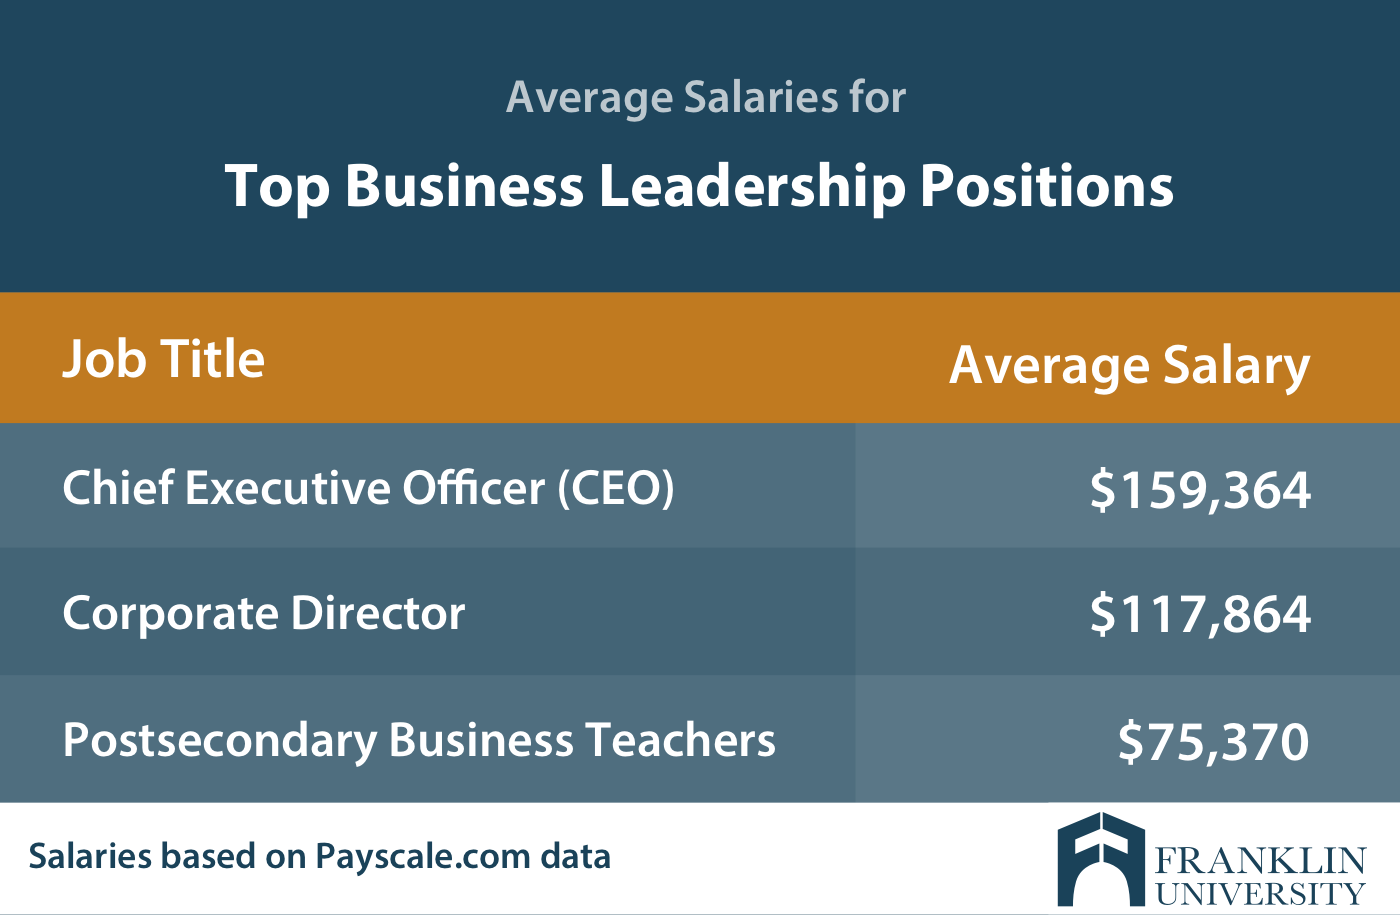 graphic describing the average salaries for top business leadership positions